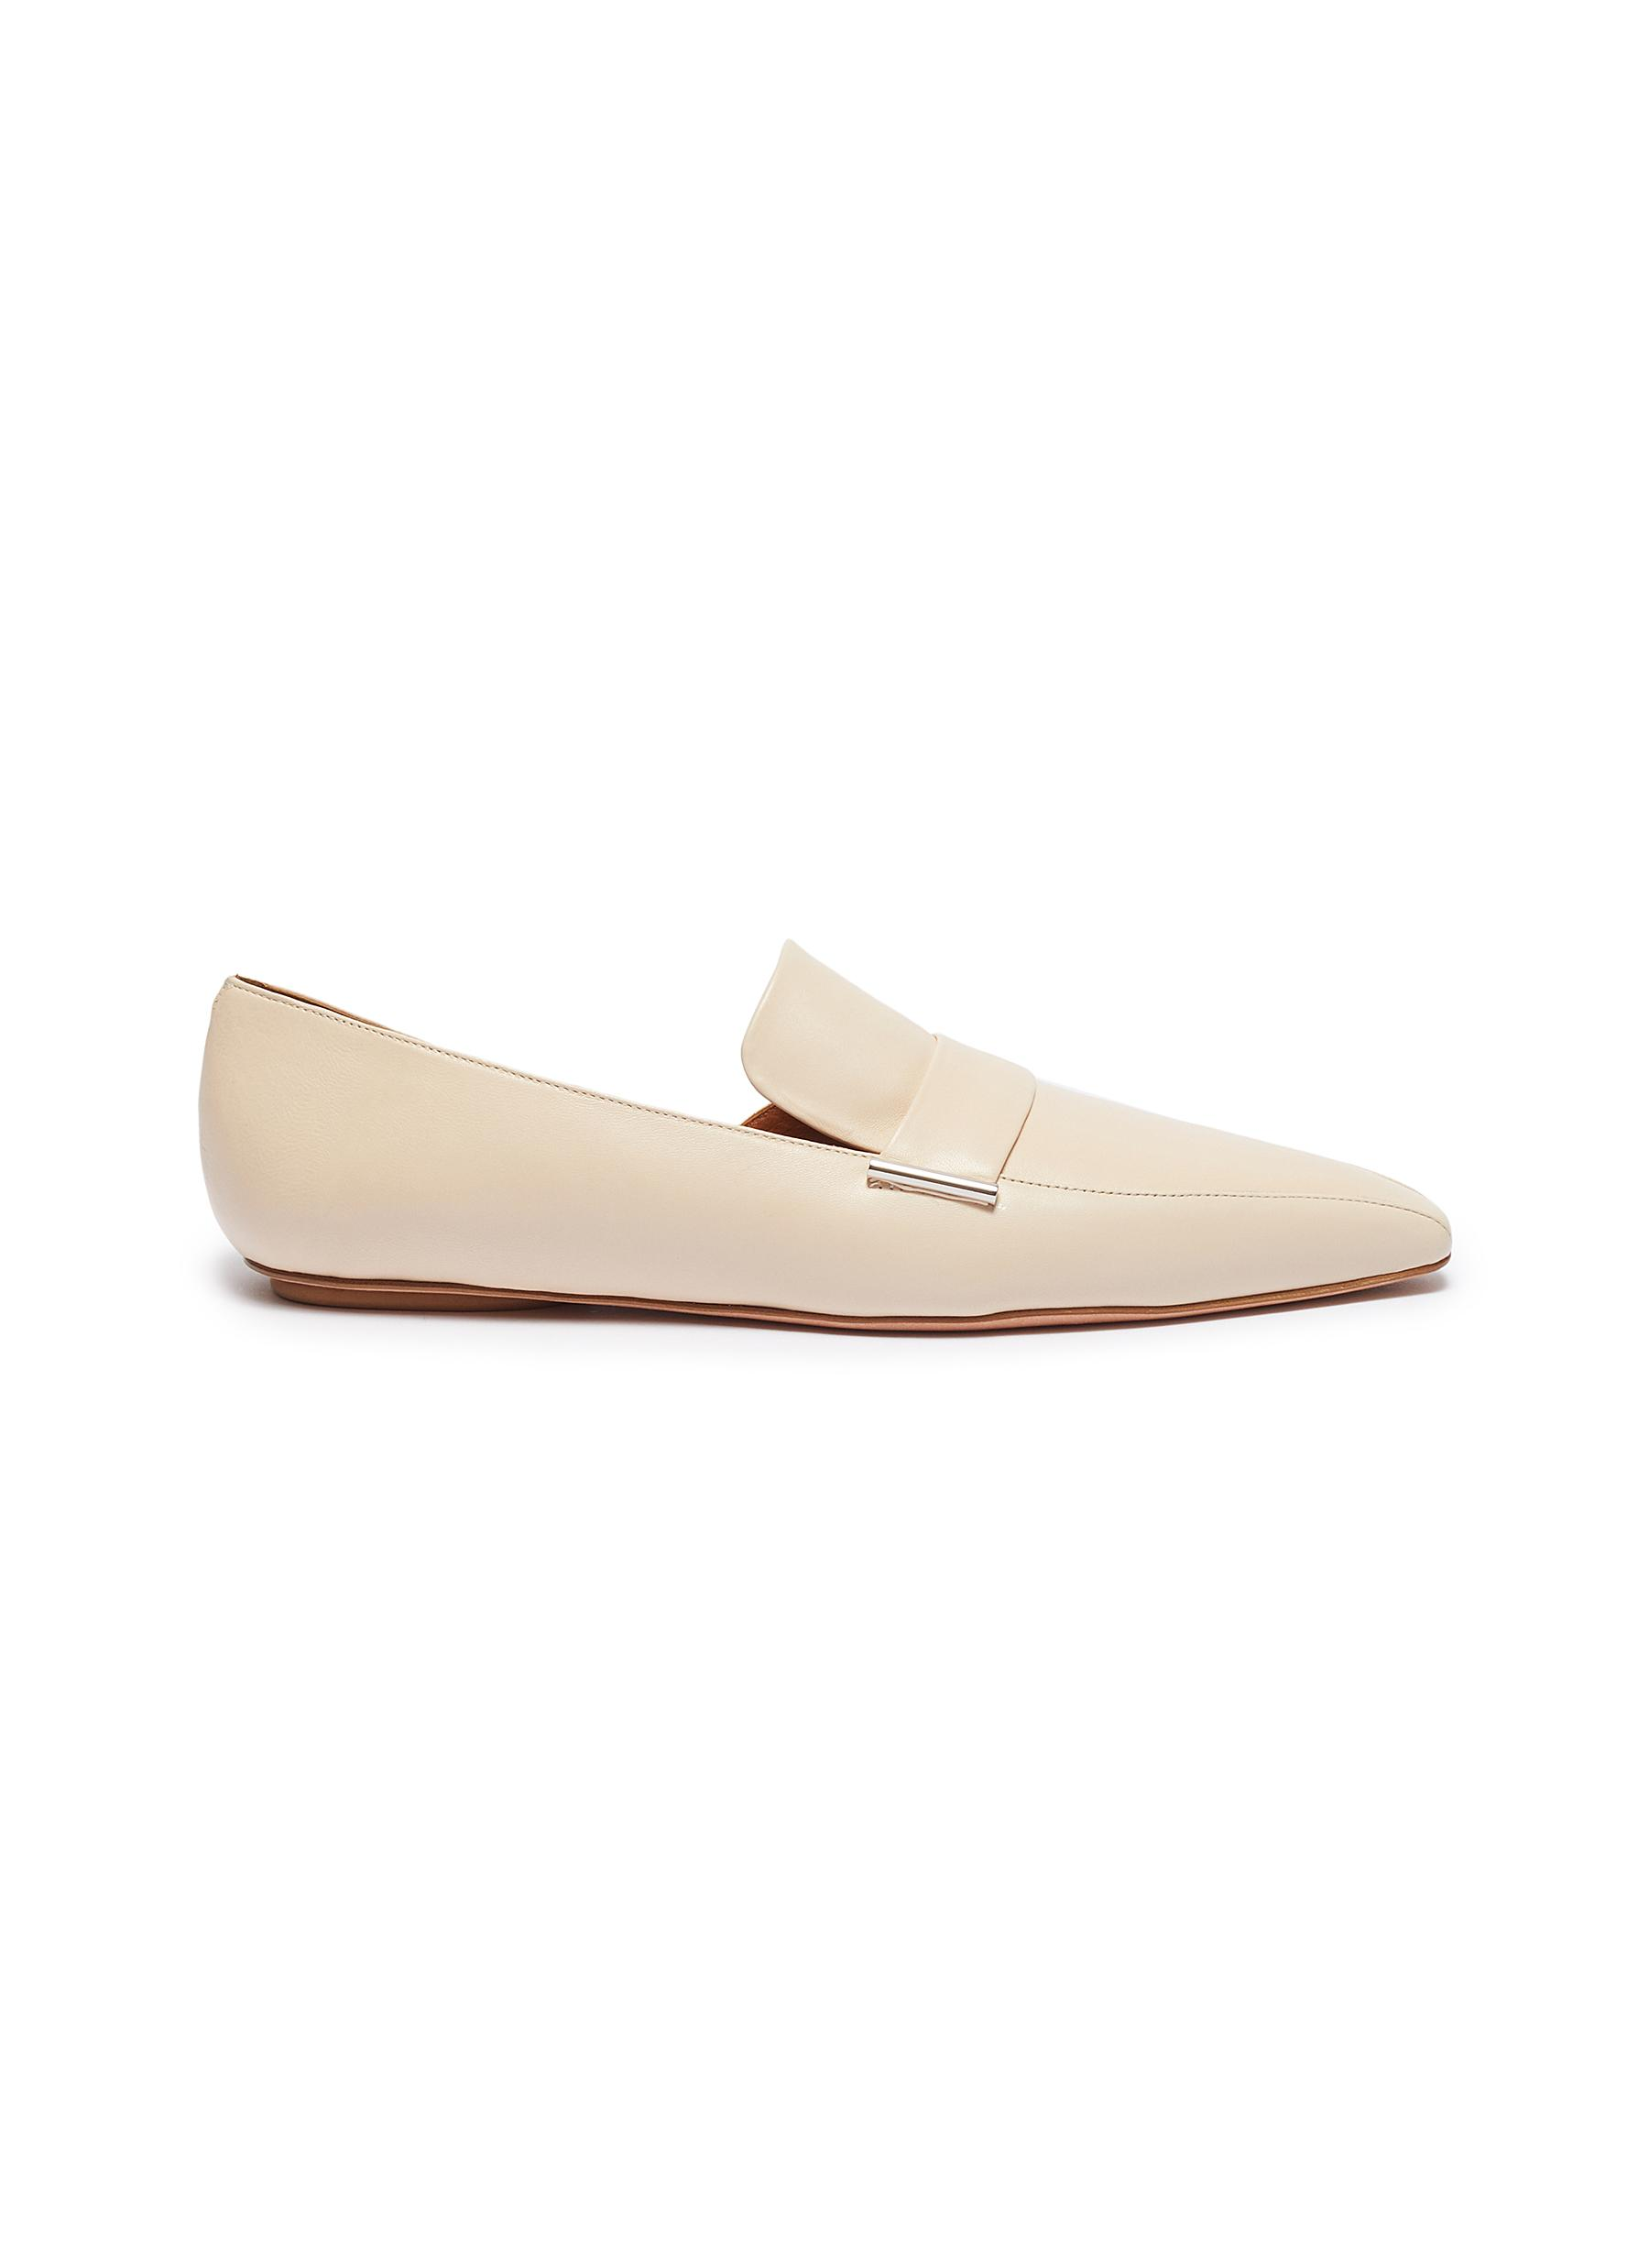 Leather dOrsay loafers by Rosetta Getty